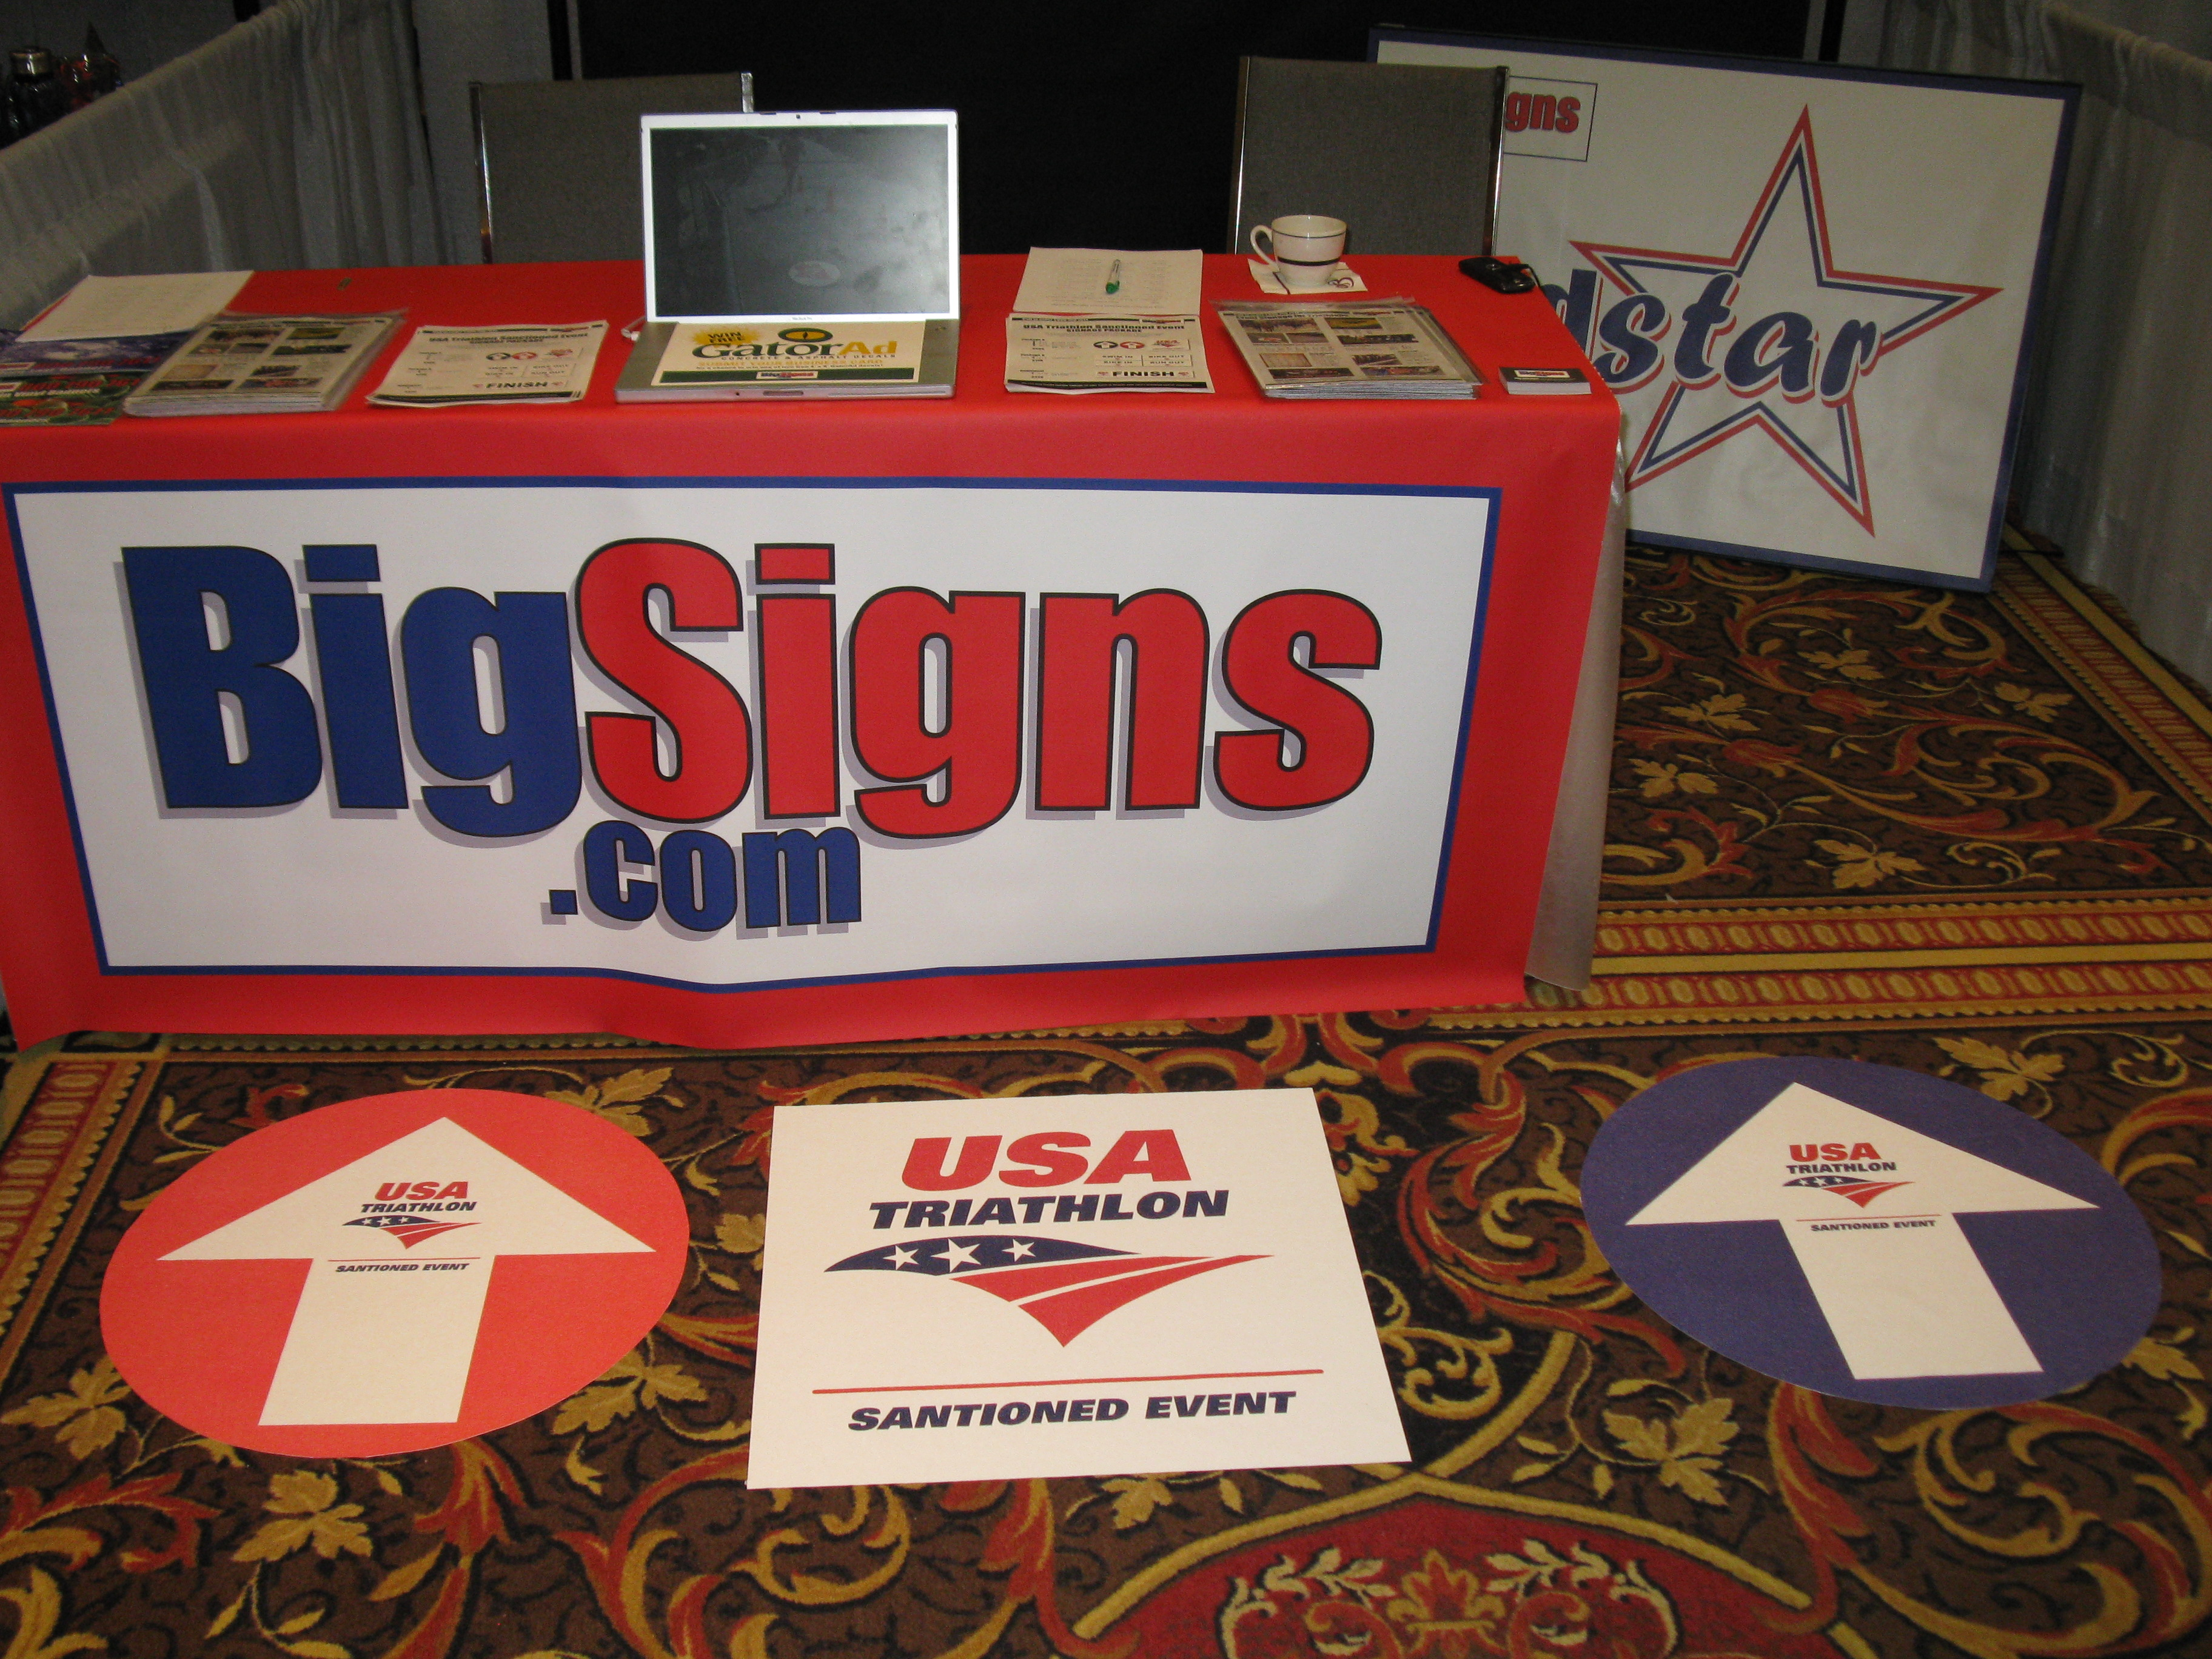 Table Runners Amp Table Drapes Bigsigns Com